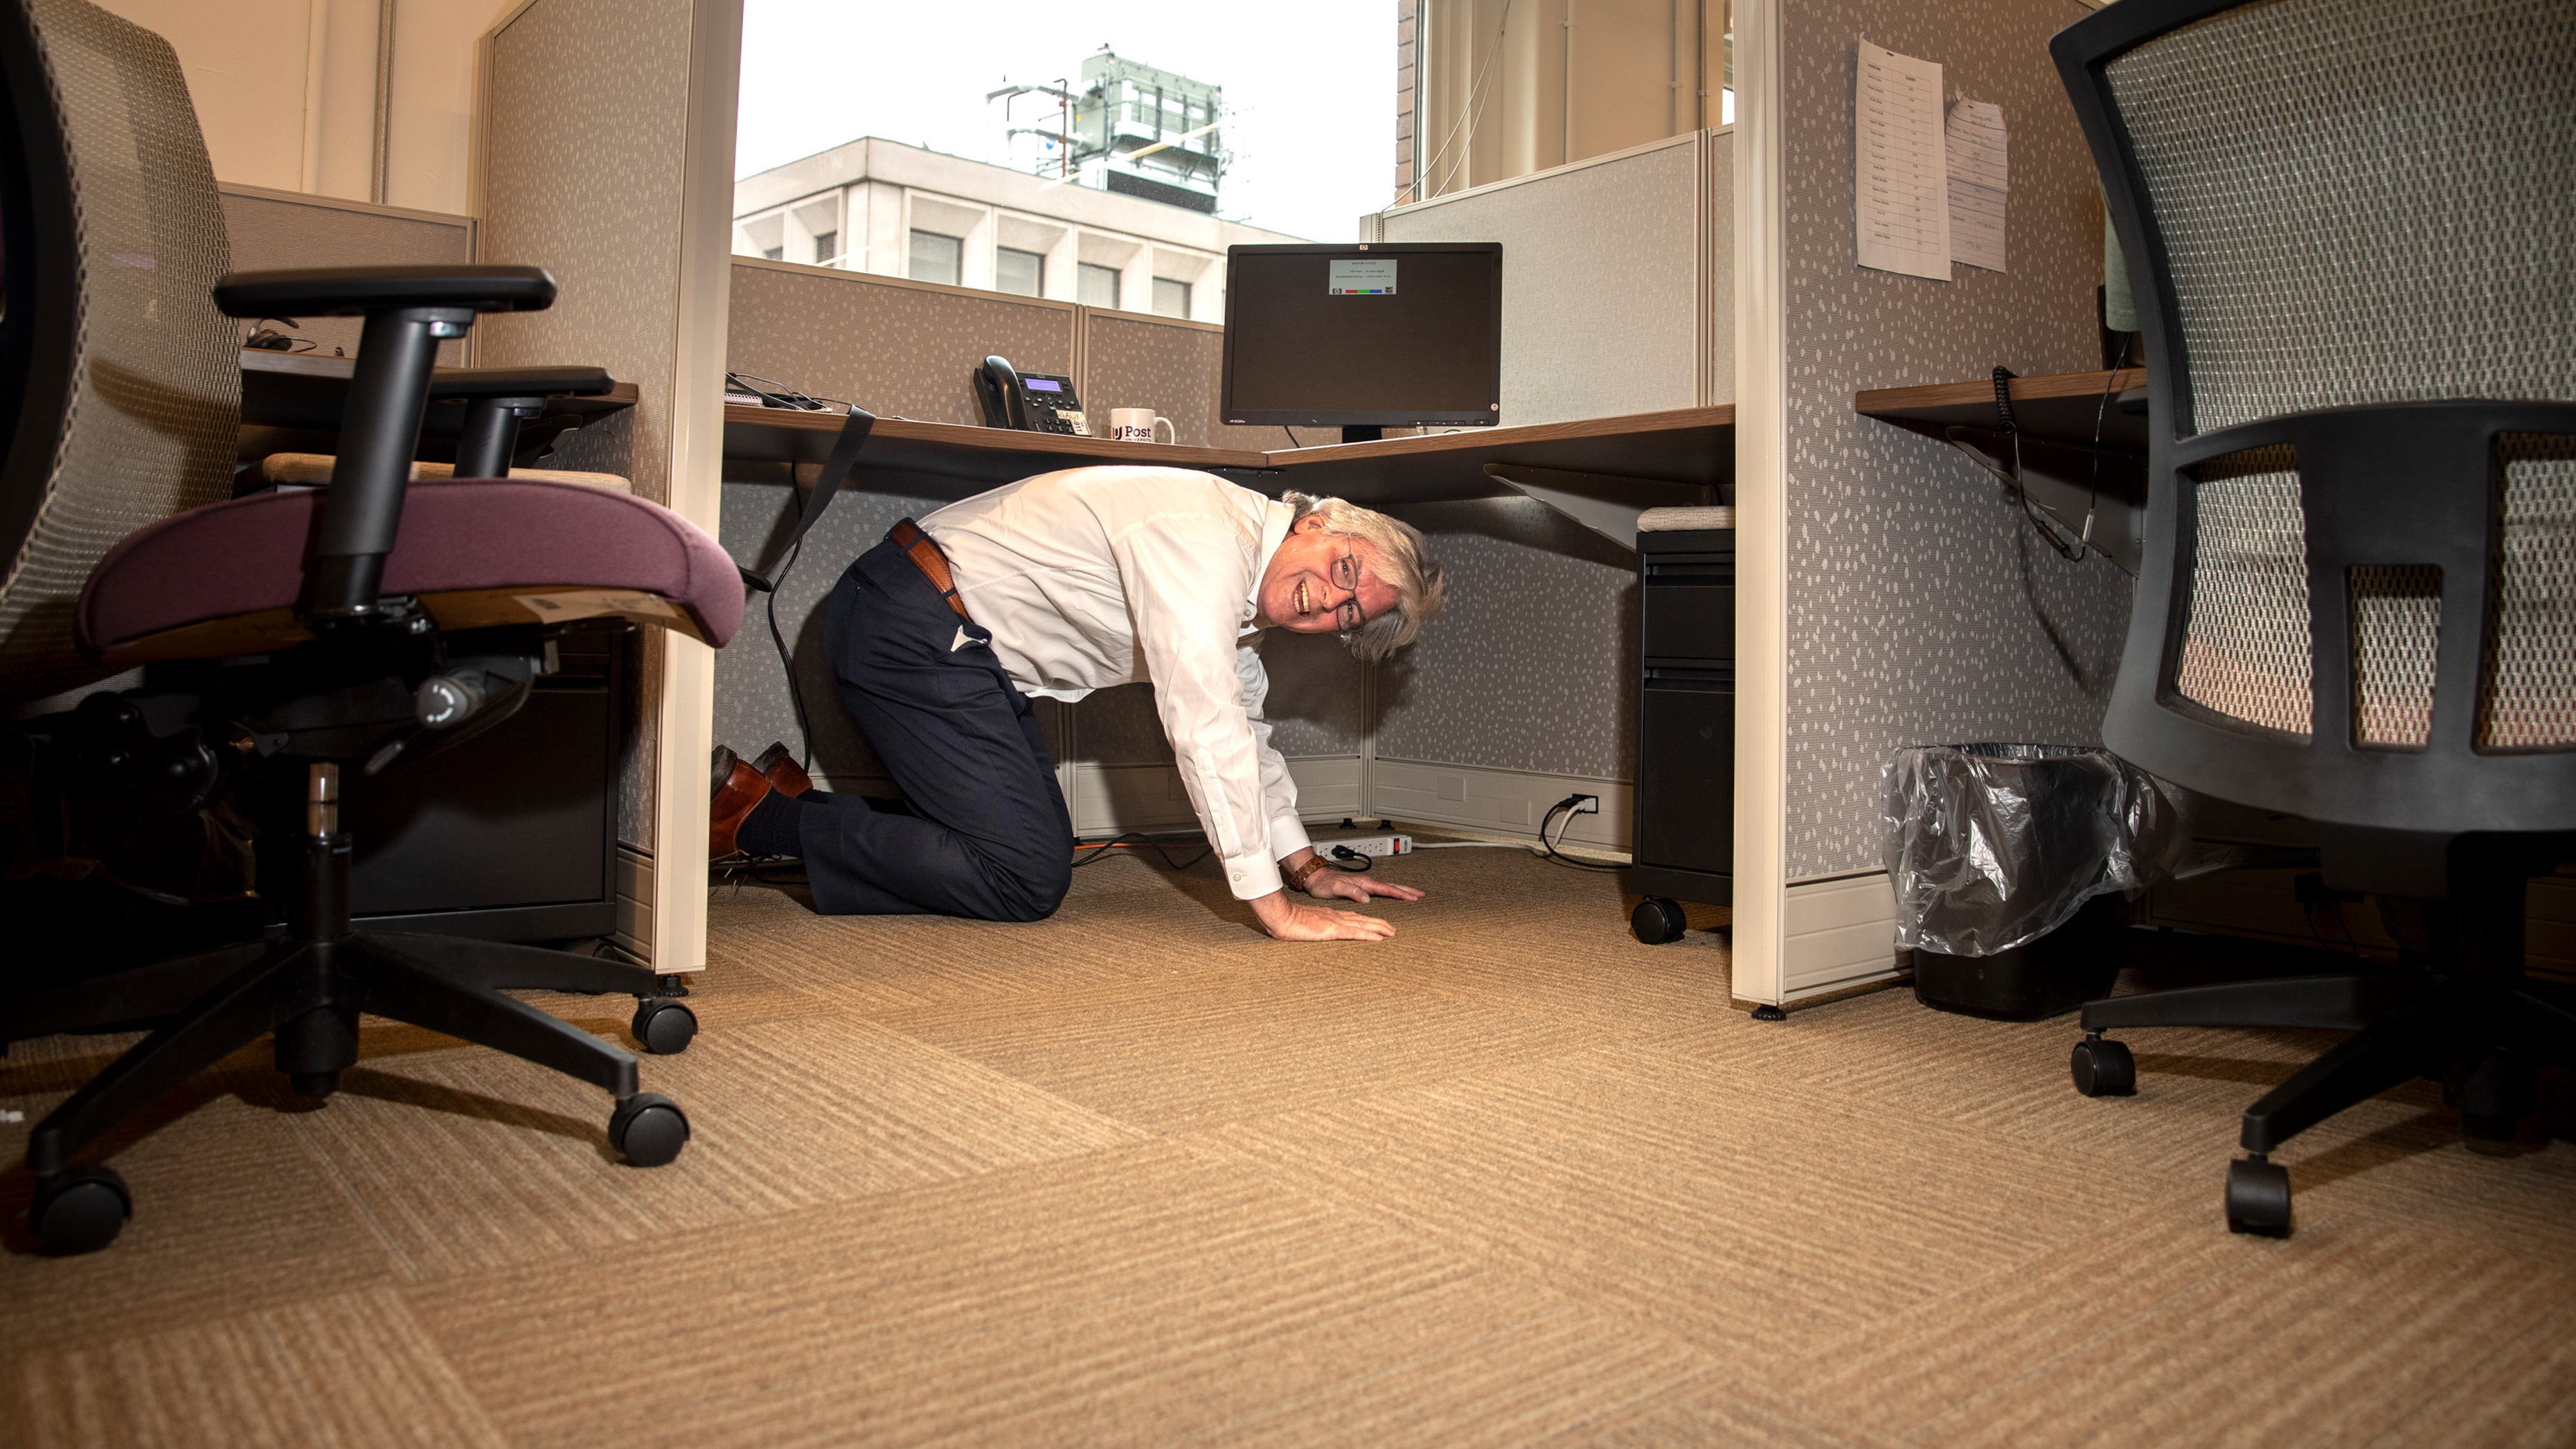 John Hopkins on hands and knees underneath an office desk and smiling